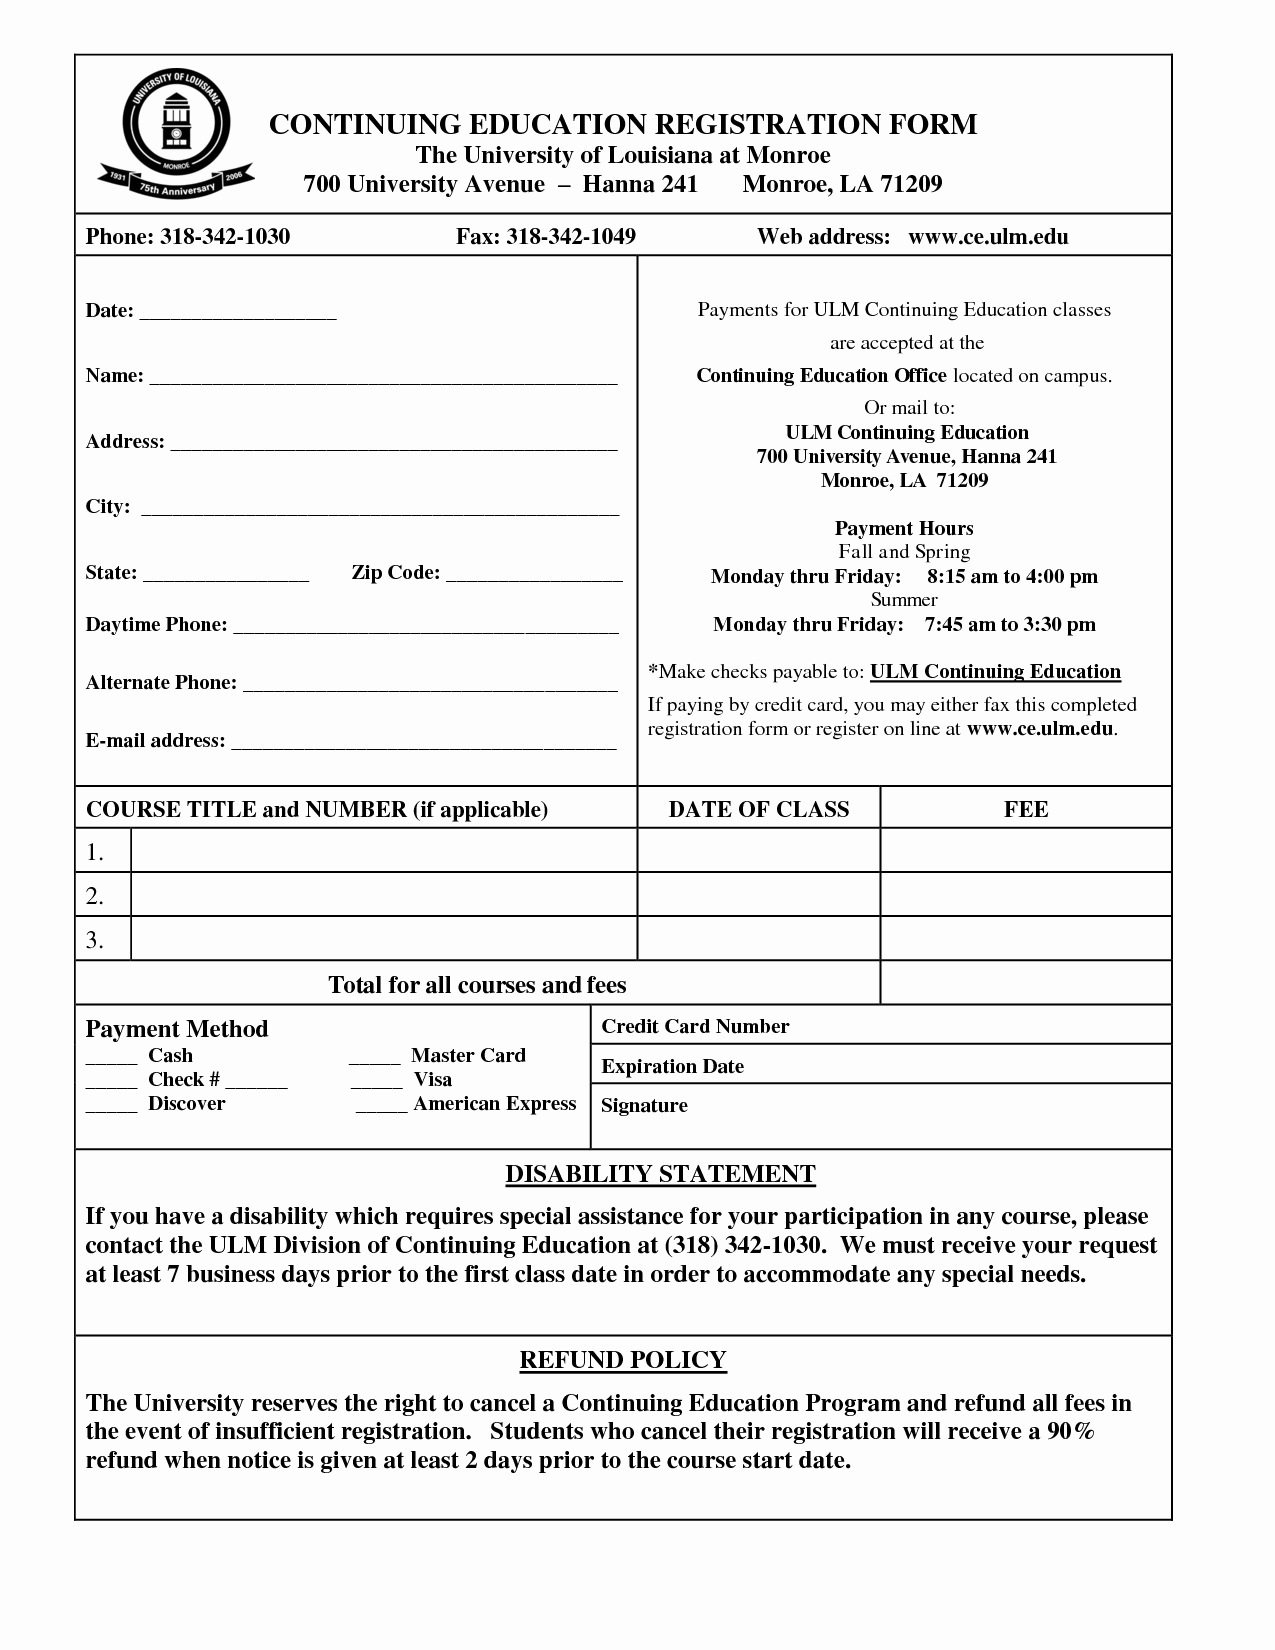 Contest Entry form Template Word Best Of Registration form Template Word